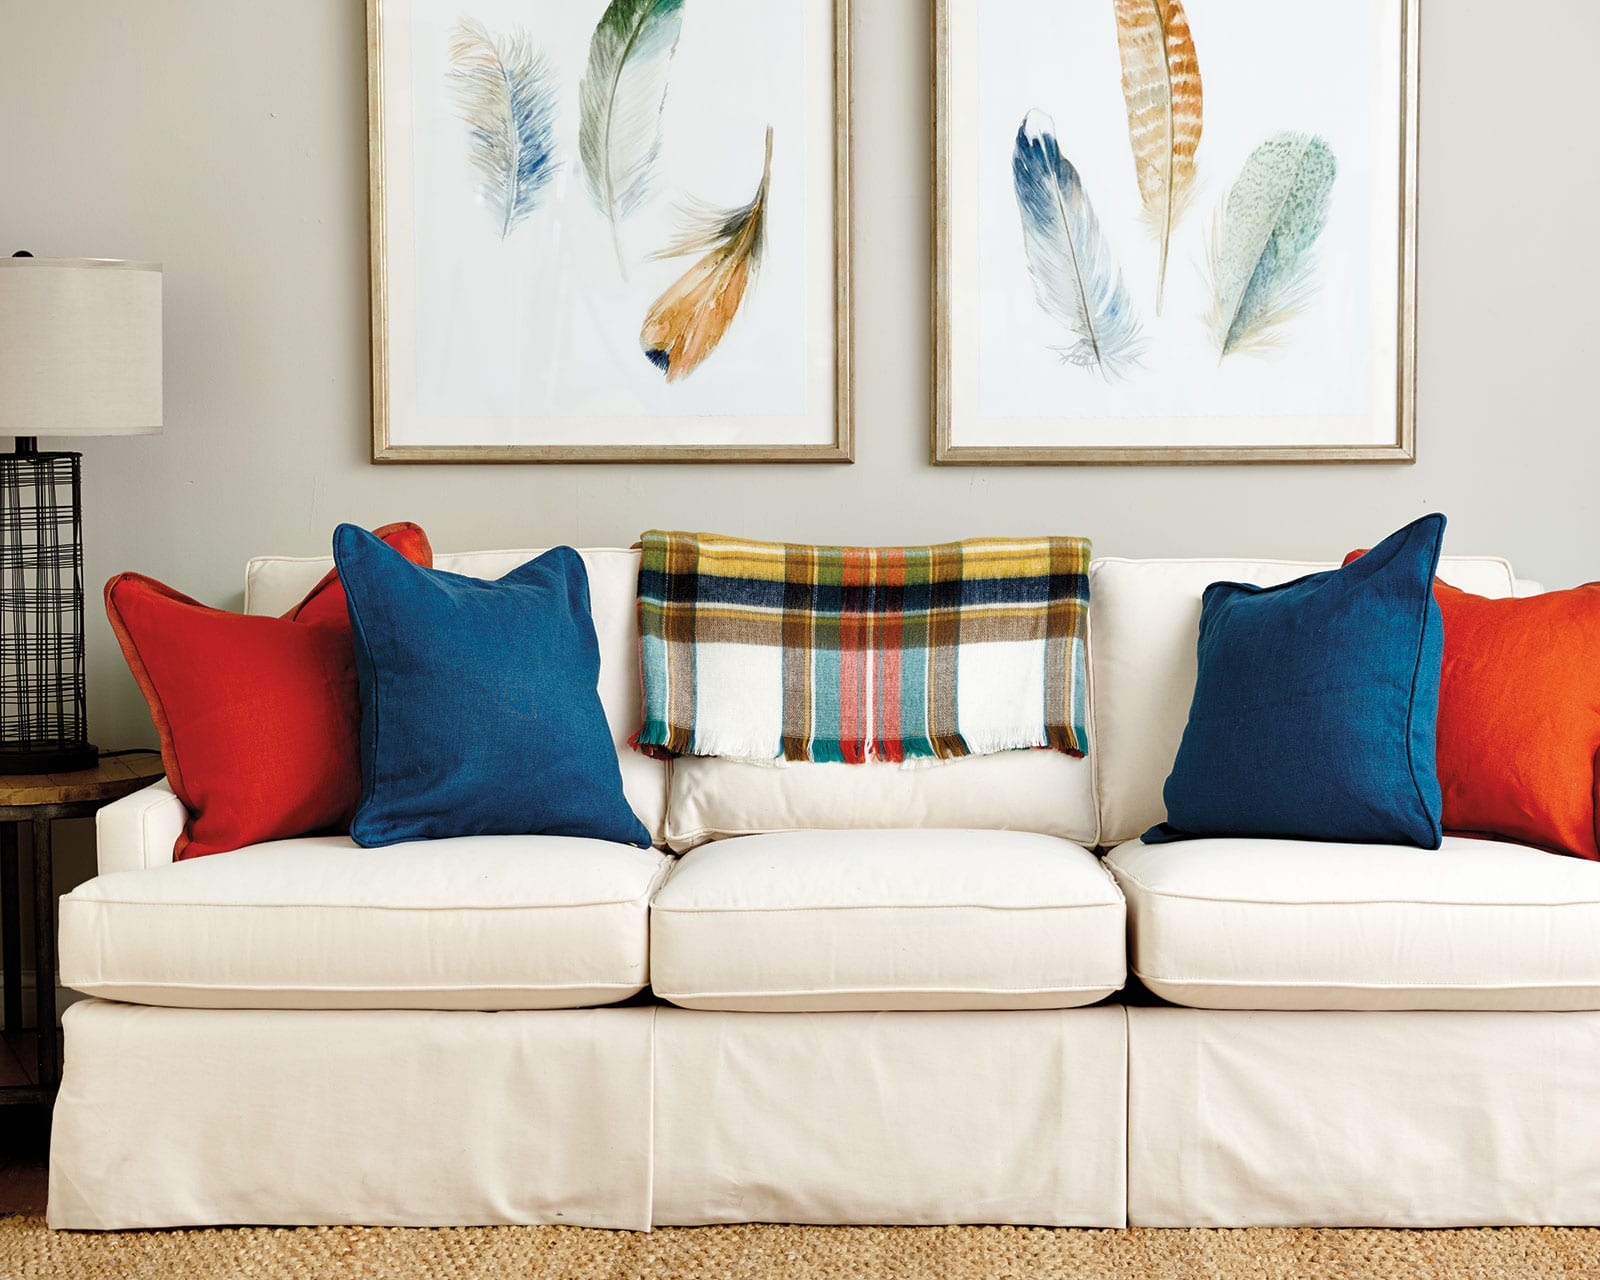 Add Solid-colored pillows